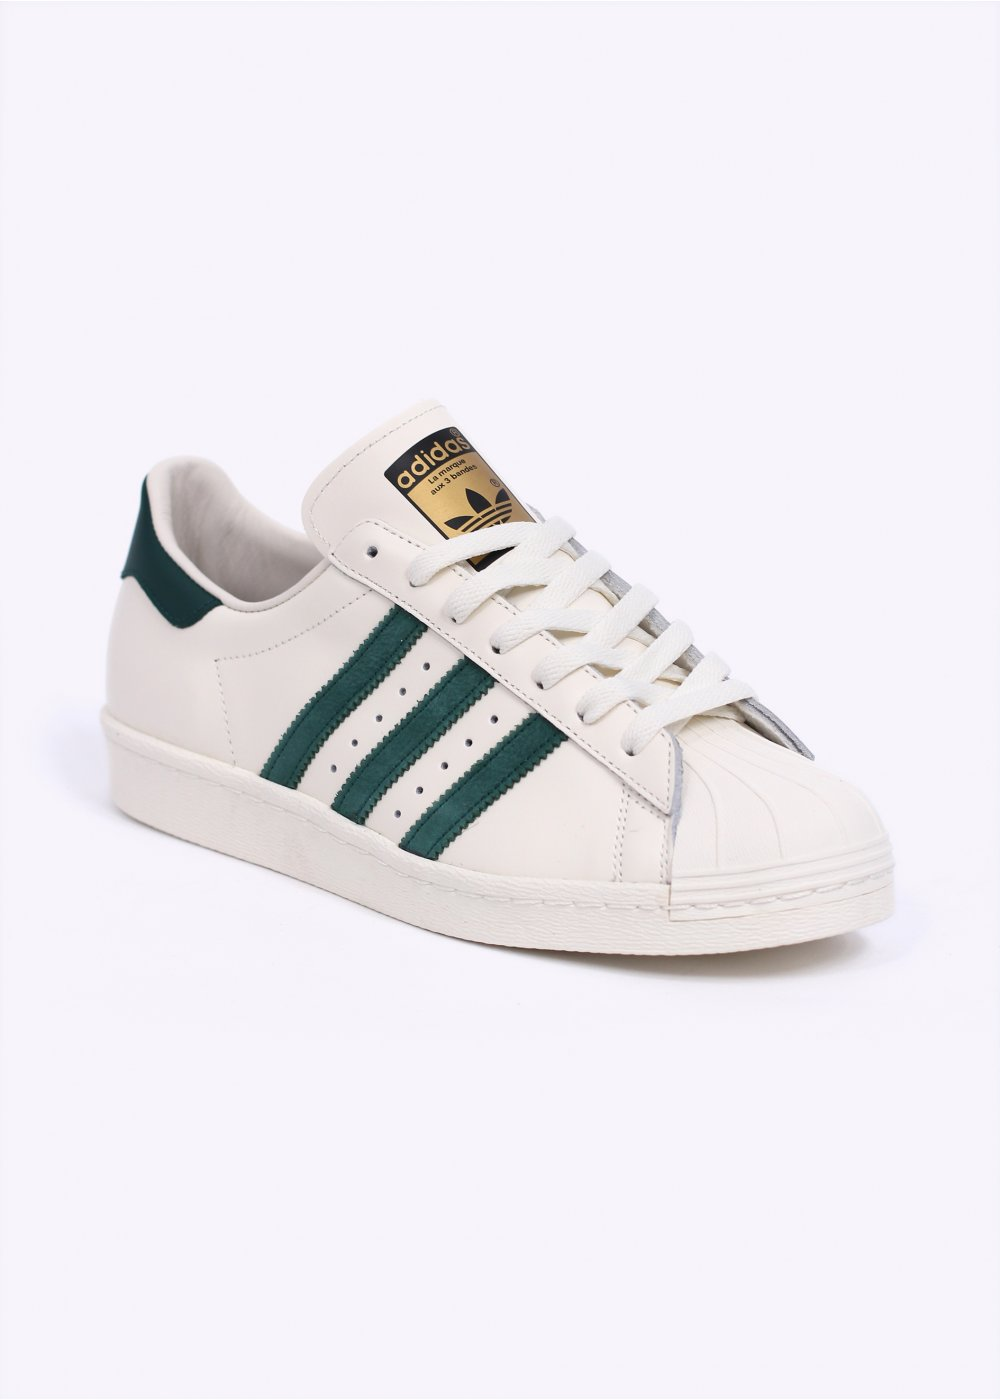 adidas originals mens vintage trainers